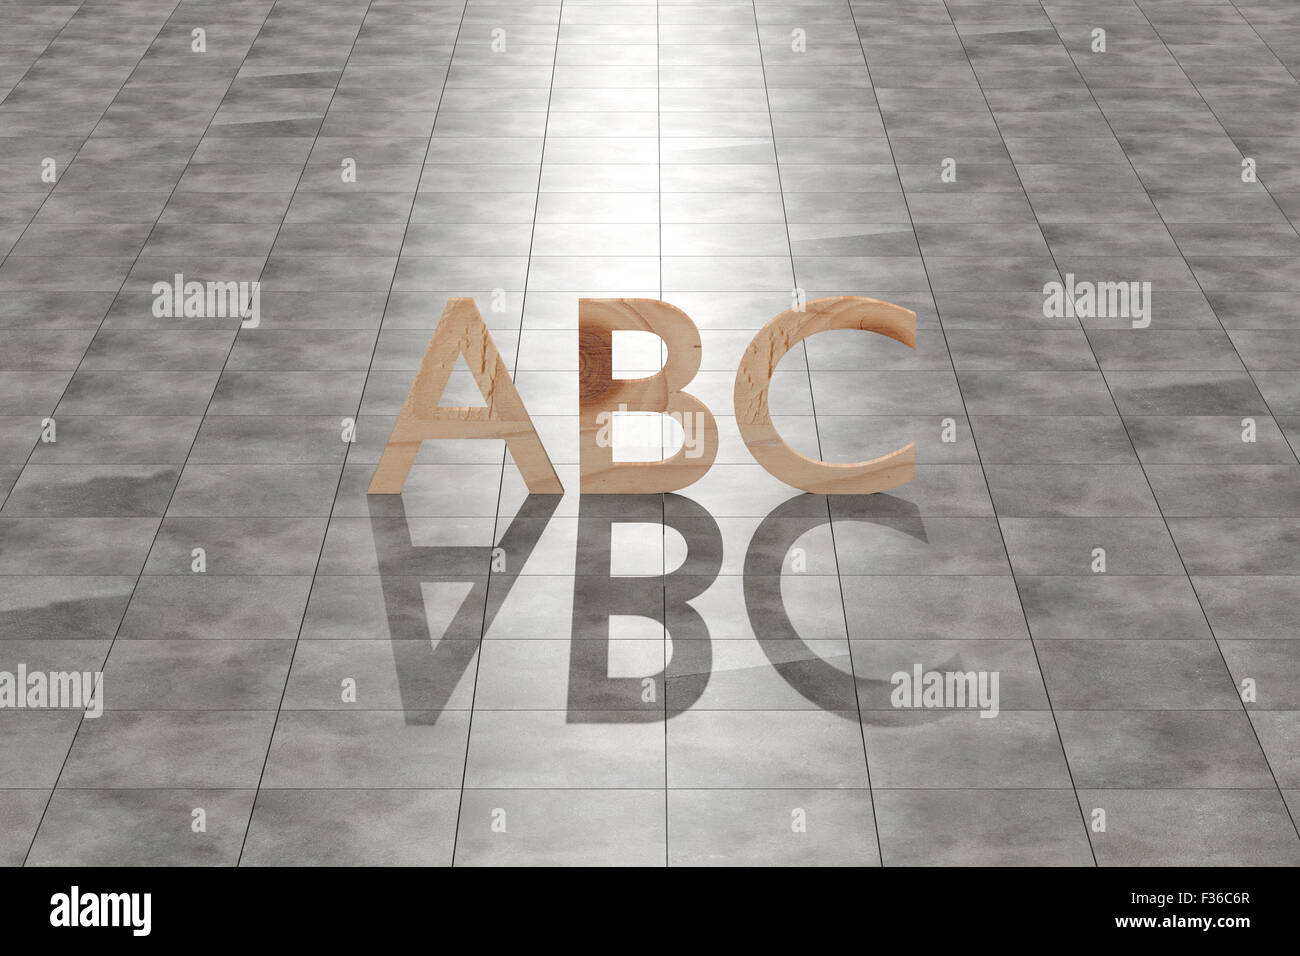 3d rendering of a wooden abc letters on a tiles floor - Stock Image